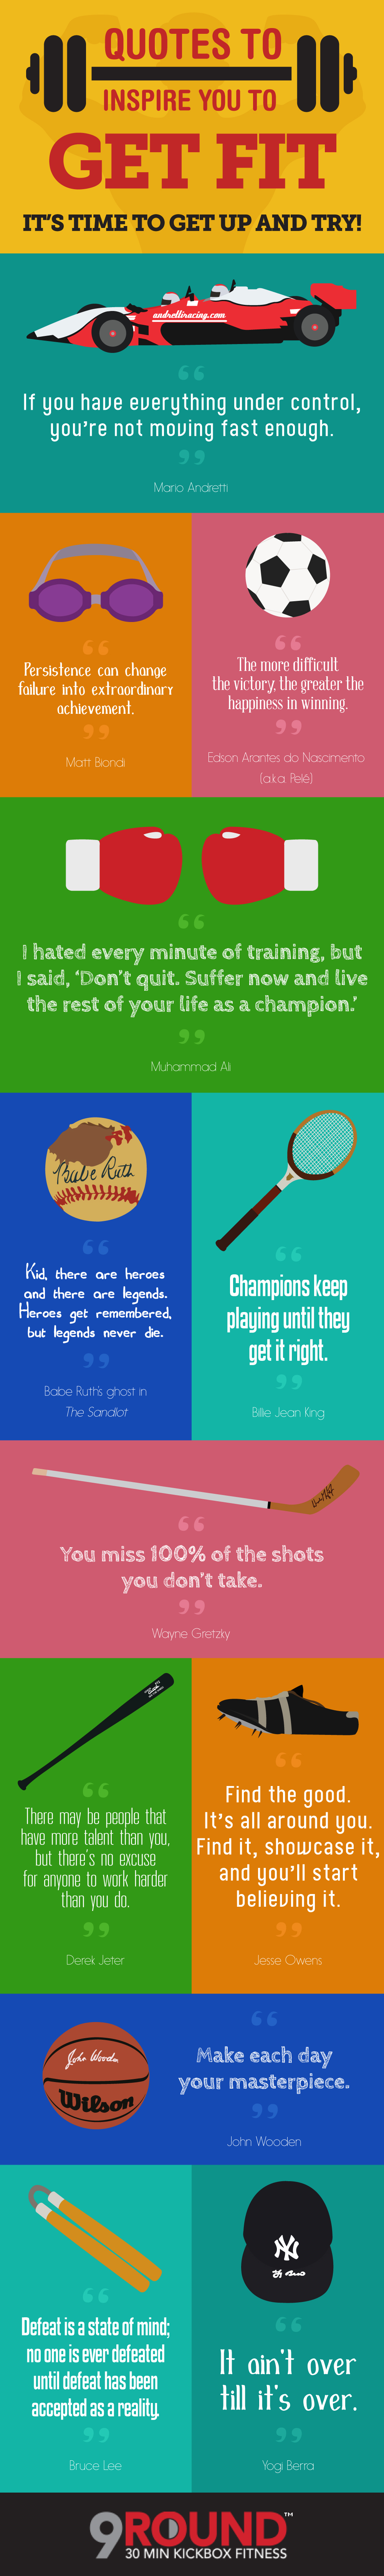 Quotes to Inspire You to Get Fit - 9Round.com - Infographic